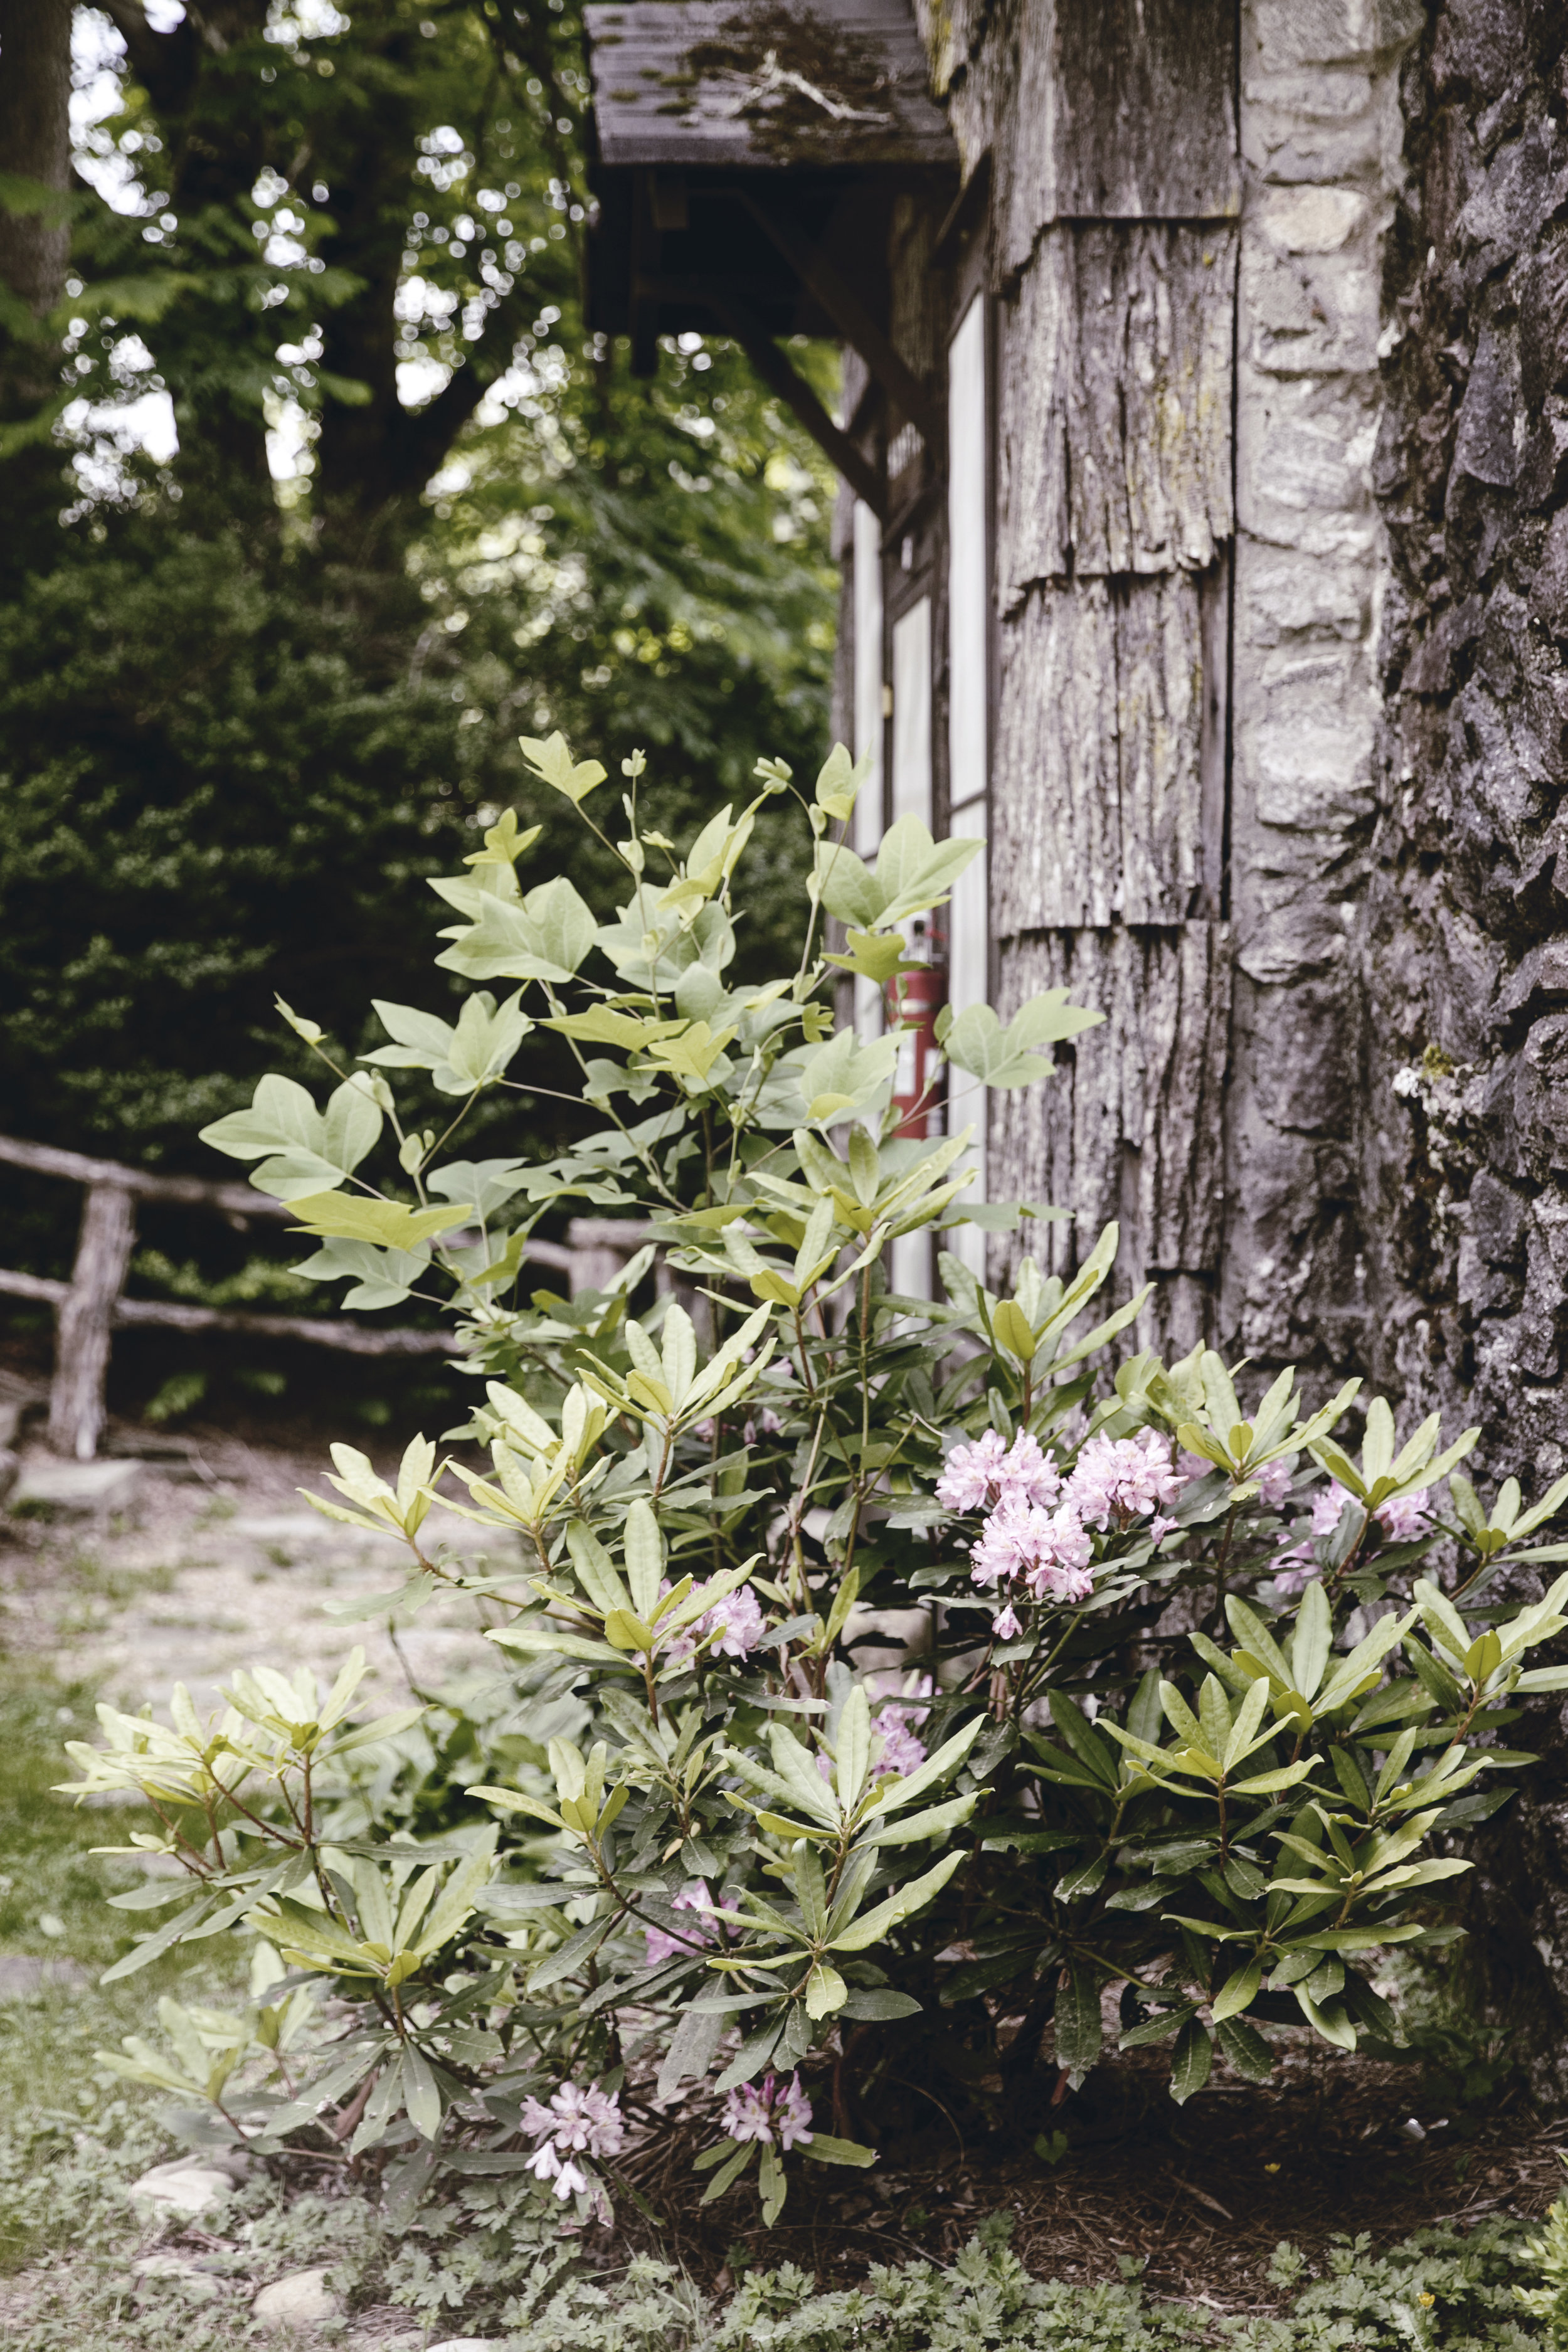 rustic mountain woodwork and flora fauna / heirloomed